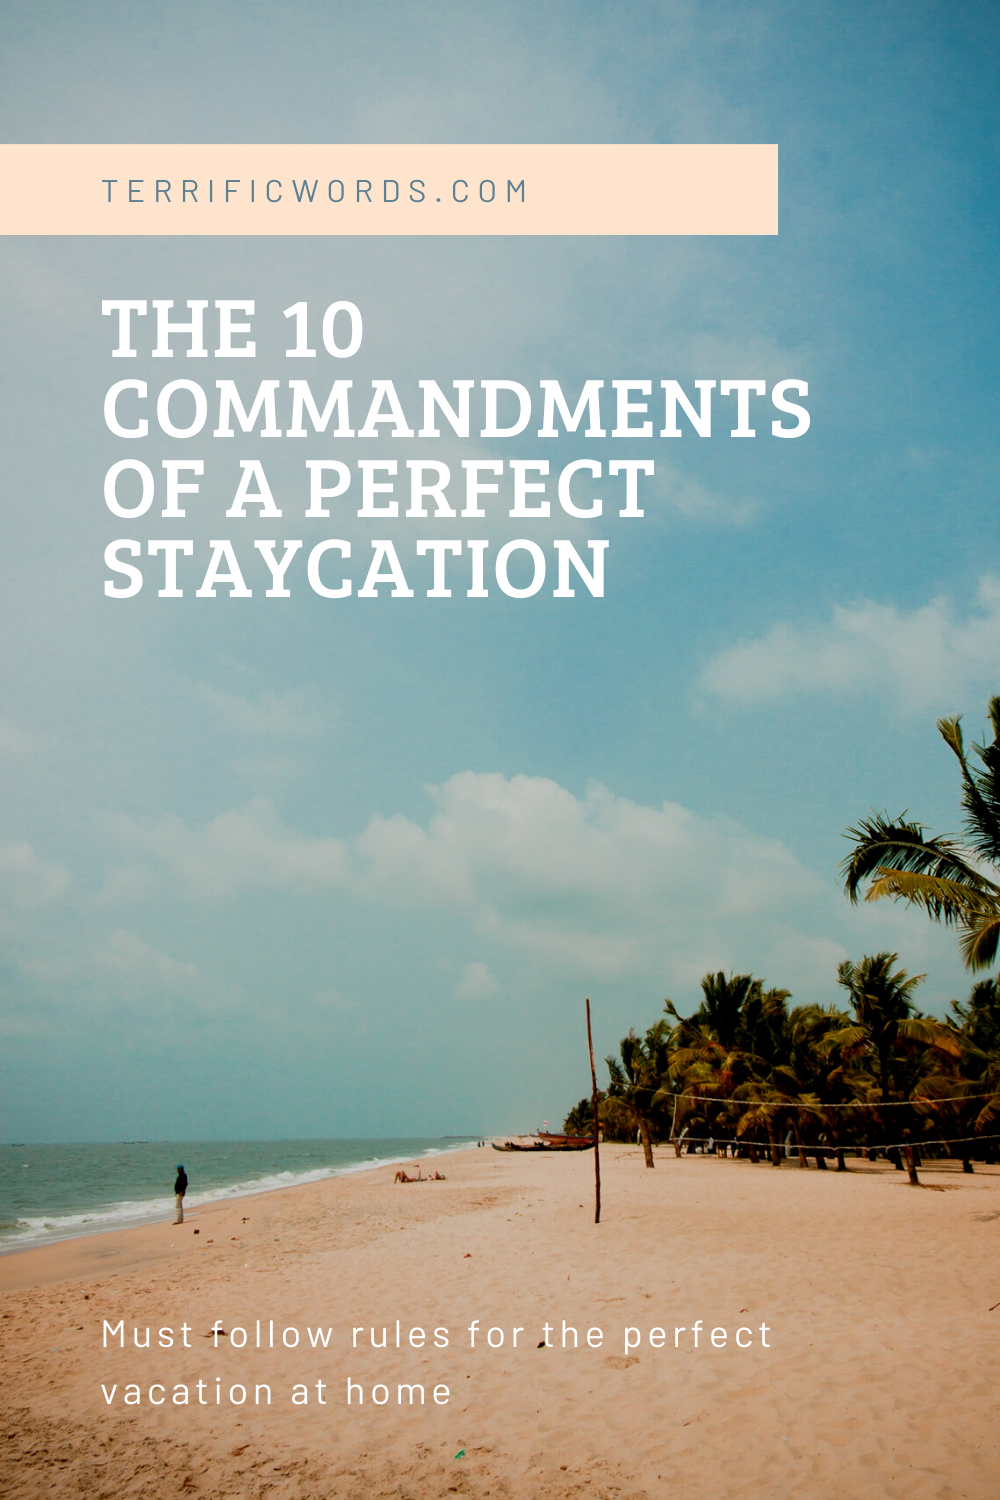 The 10 Commandments of a Perfect Staycation